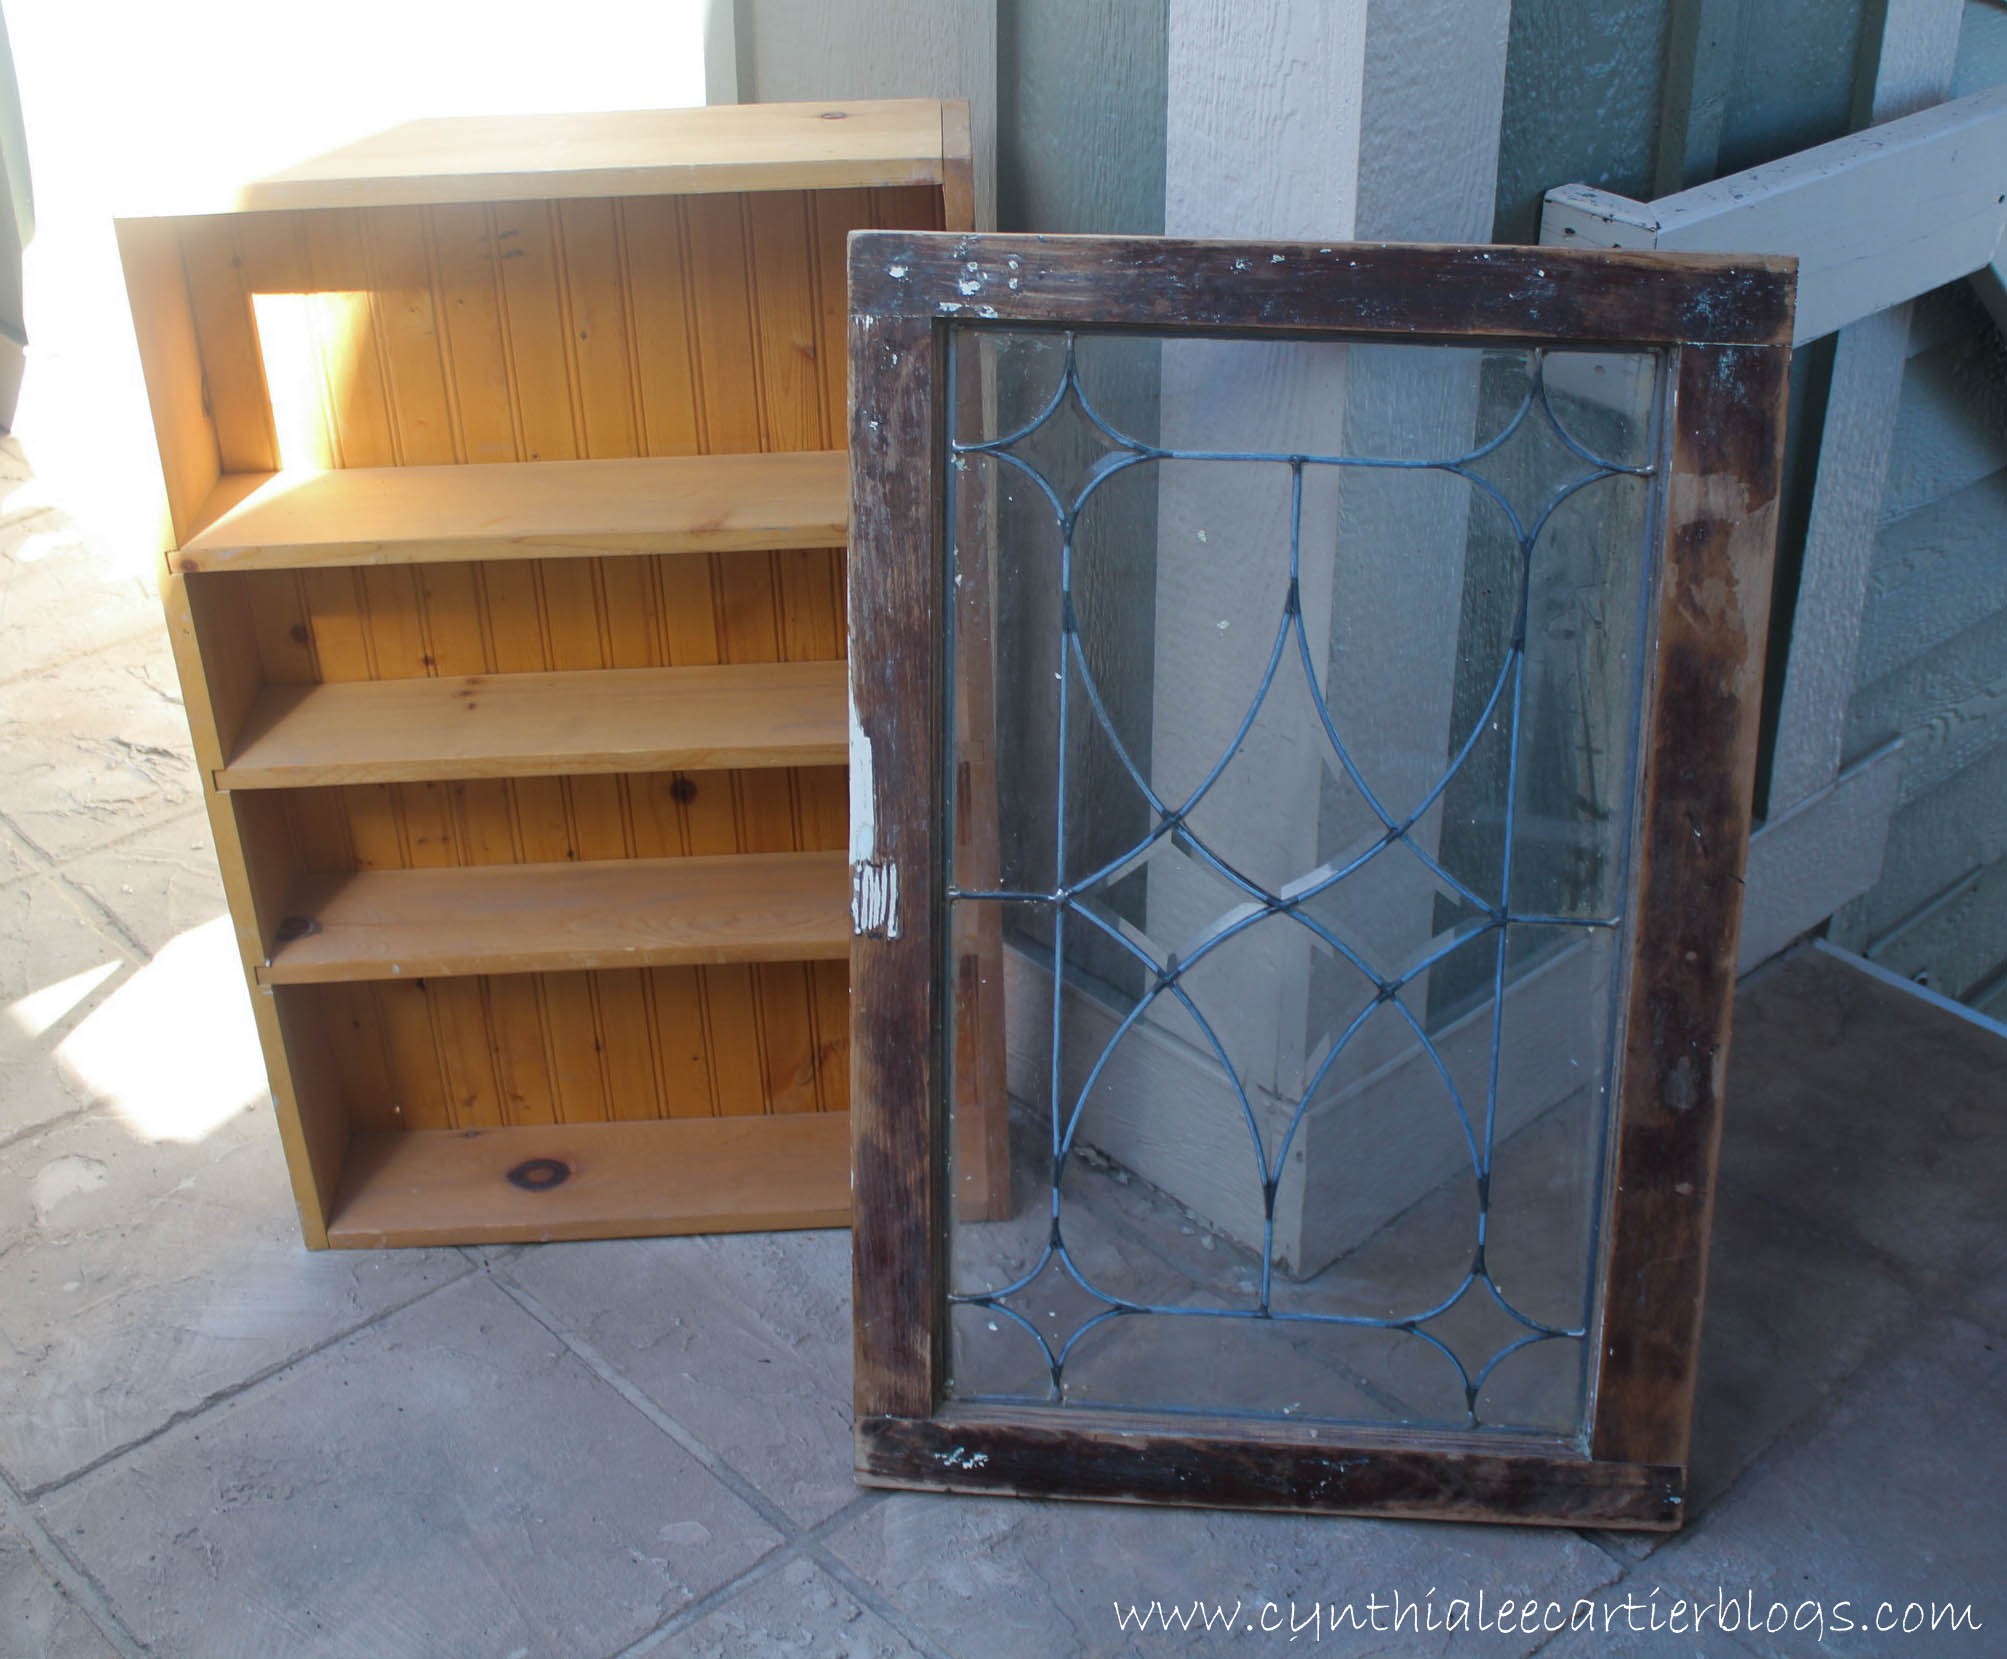 Interior Window Cabinet diy old window wall cabinet cynthia lee cartier this is a picture of base and an ready to assemble to